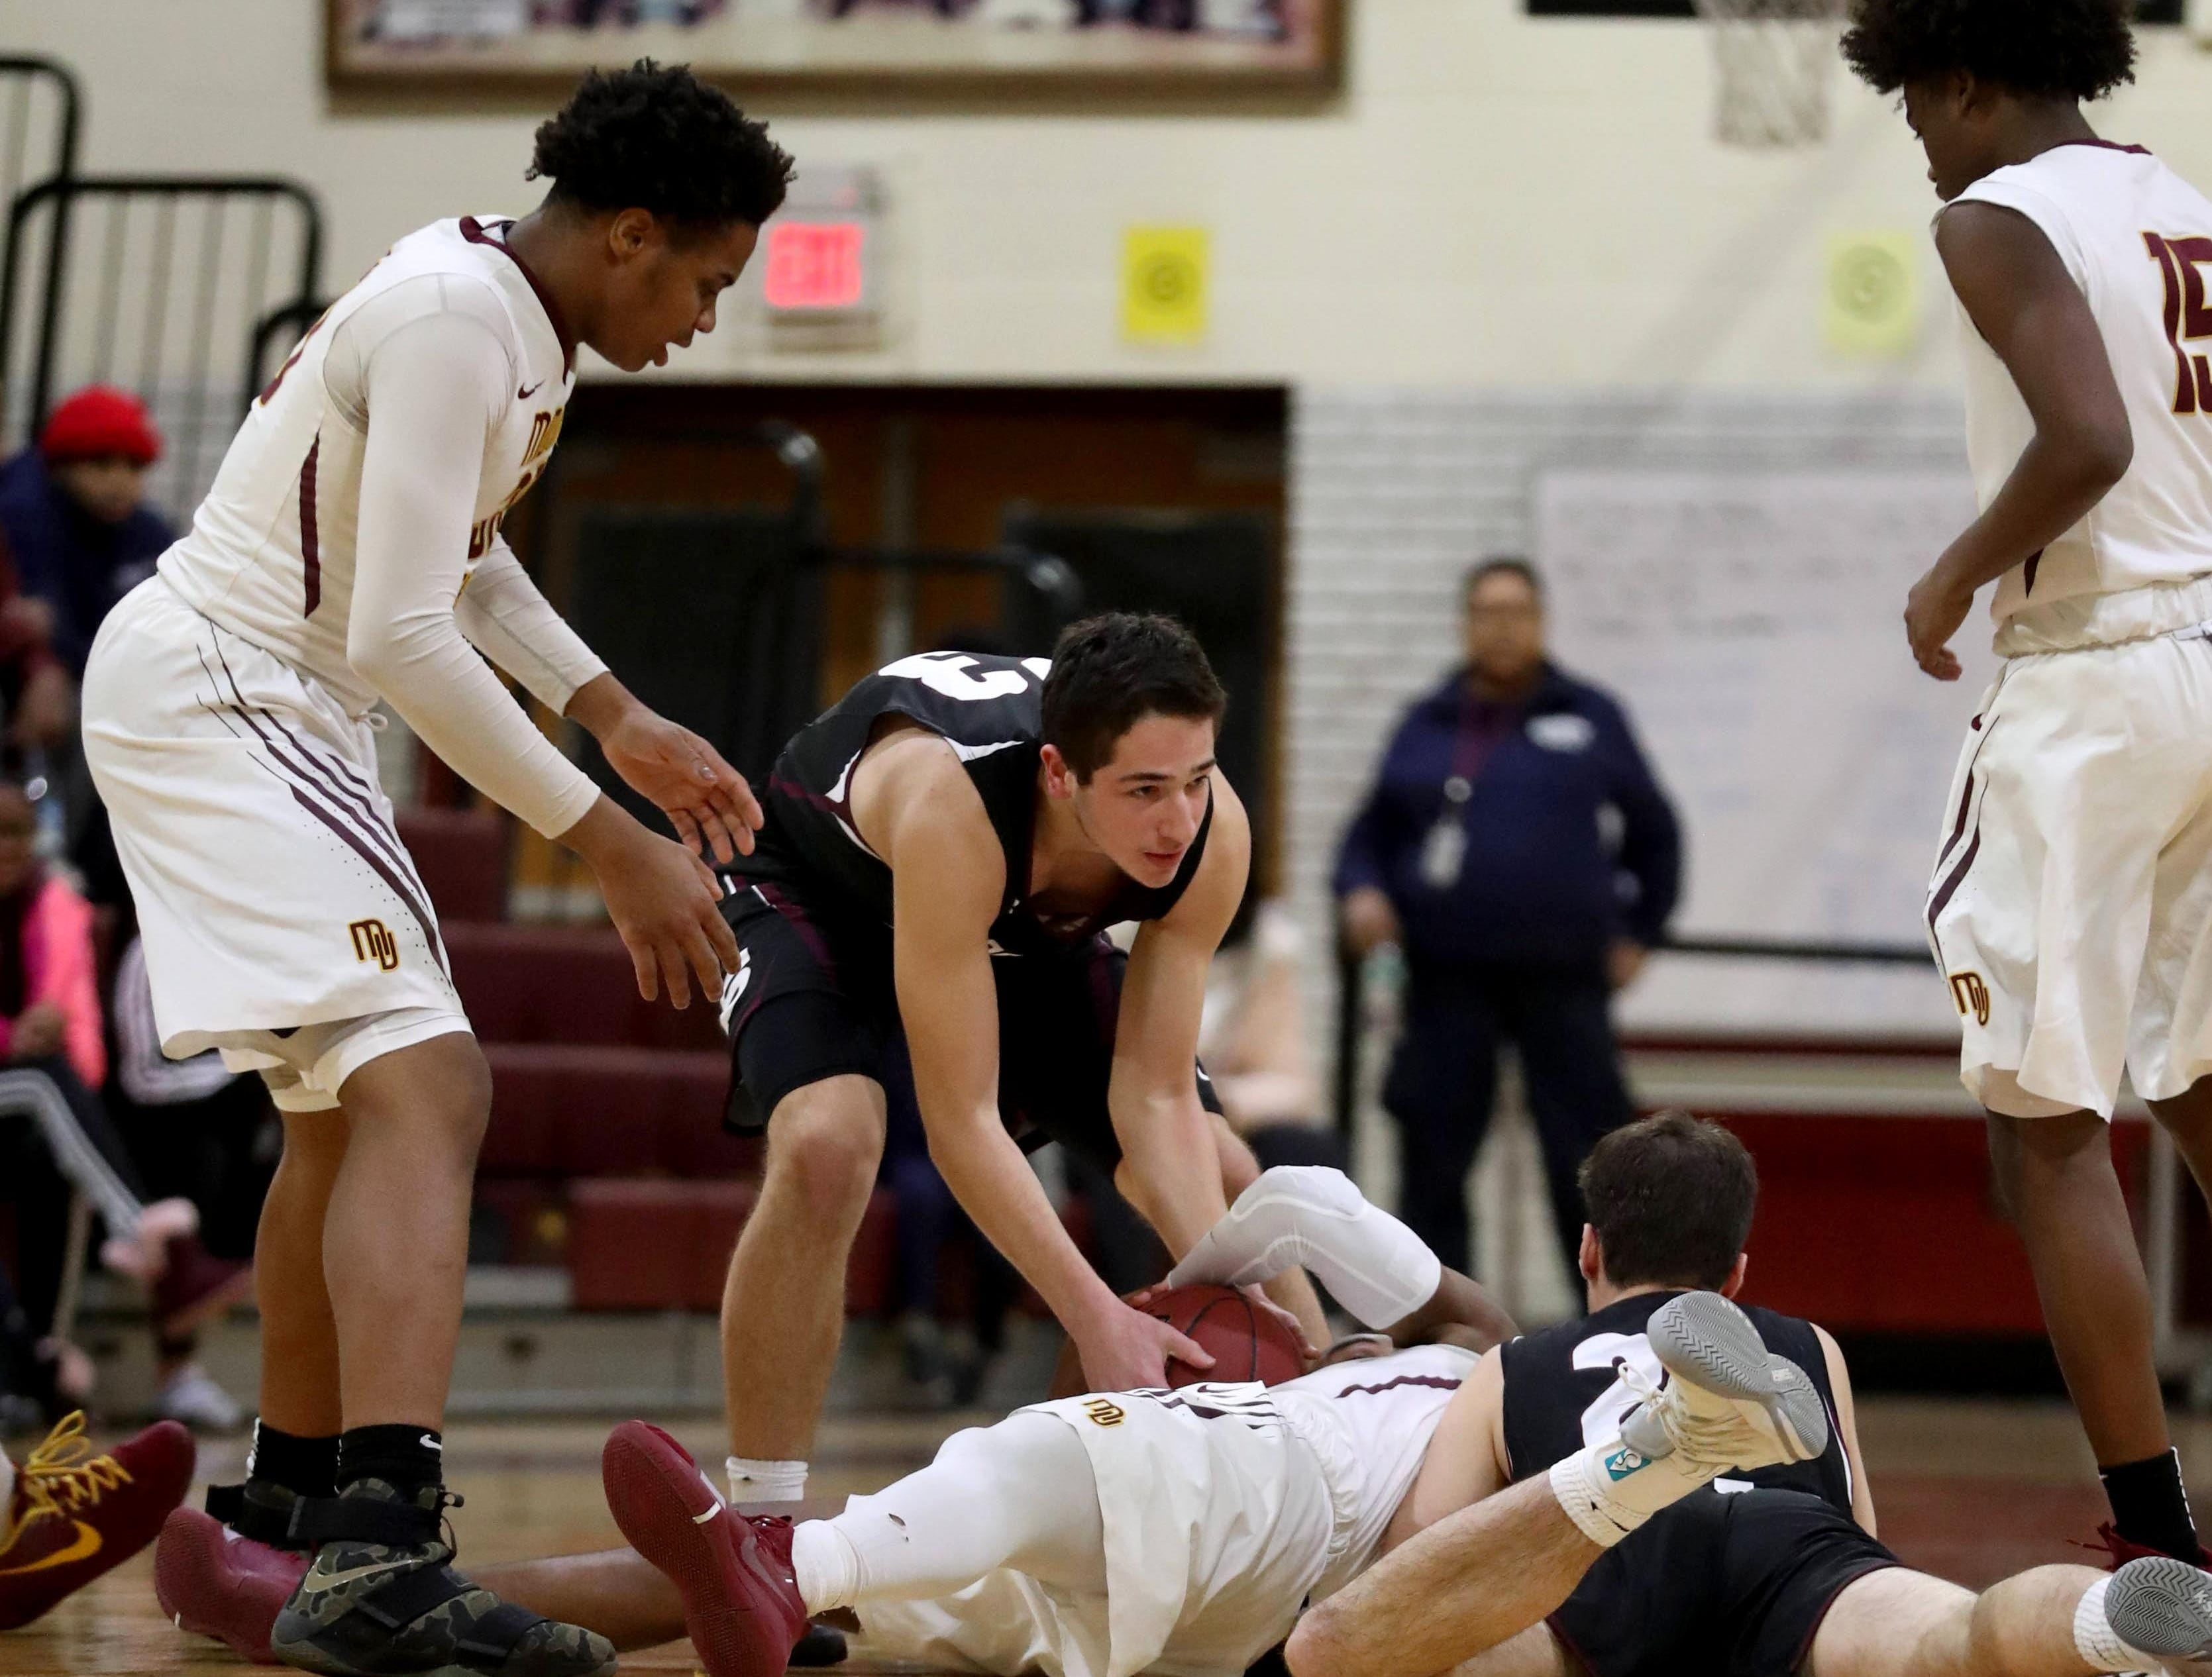 Mount Vernon defeated Scarsdale 70-54 in a varsity basketball game at Mount Vernon High School Jan. 9, 2019